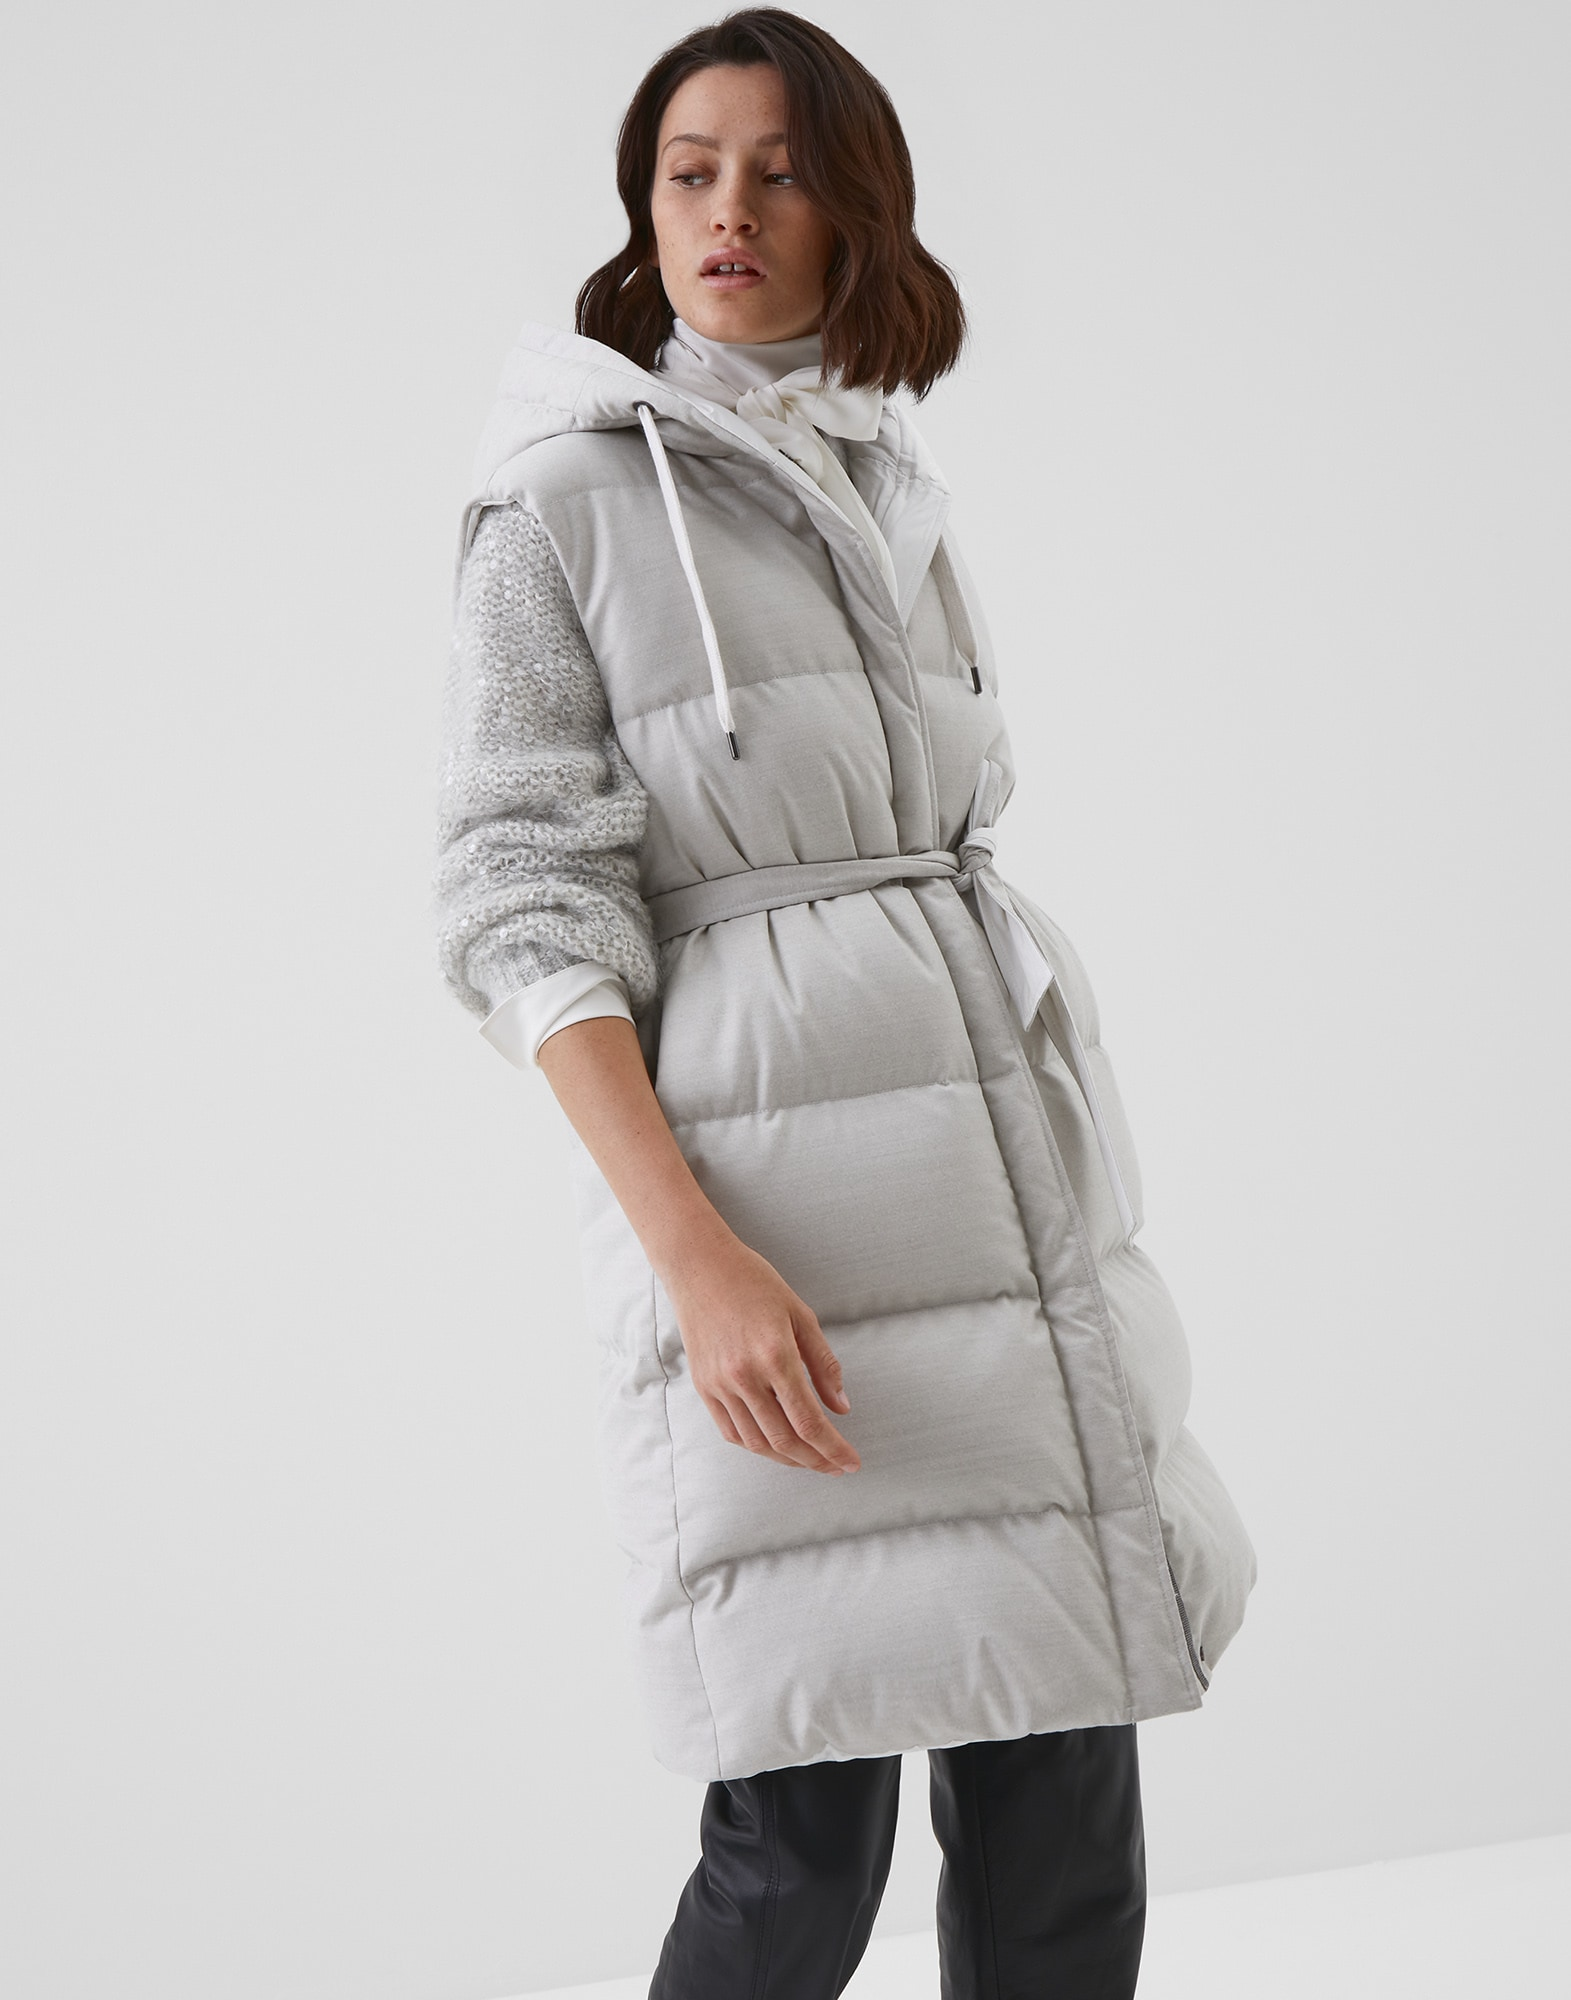 Down Sleeveless Jacket Natural Woman 1 - Brunello Cucinelli